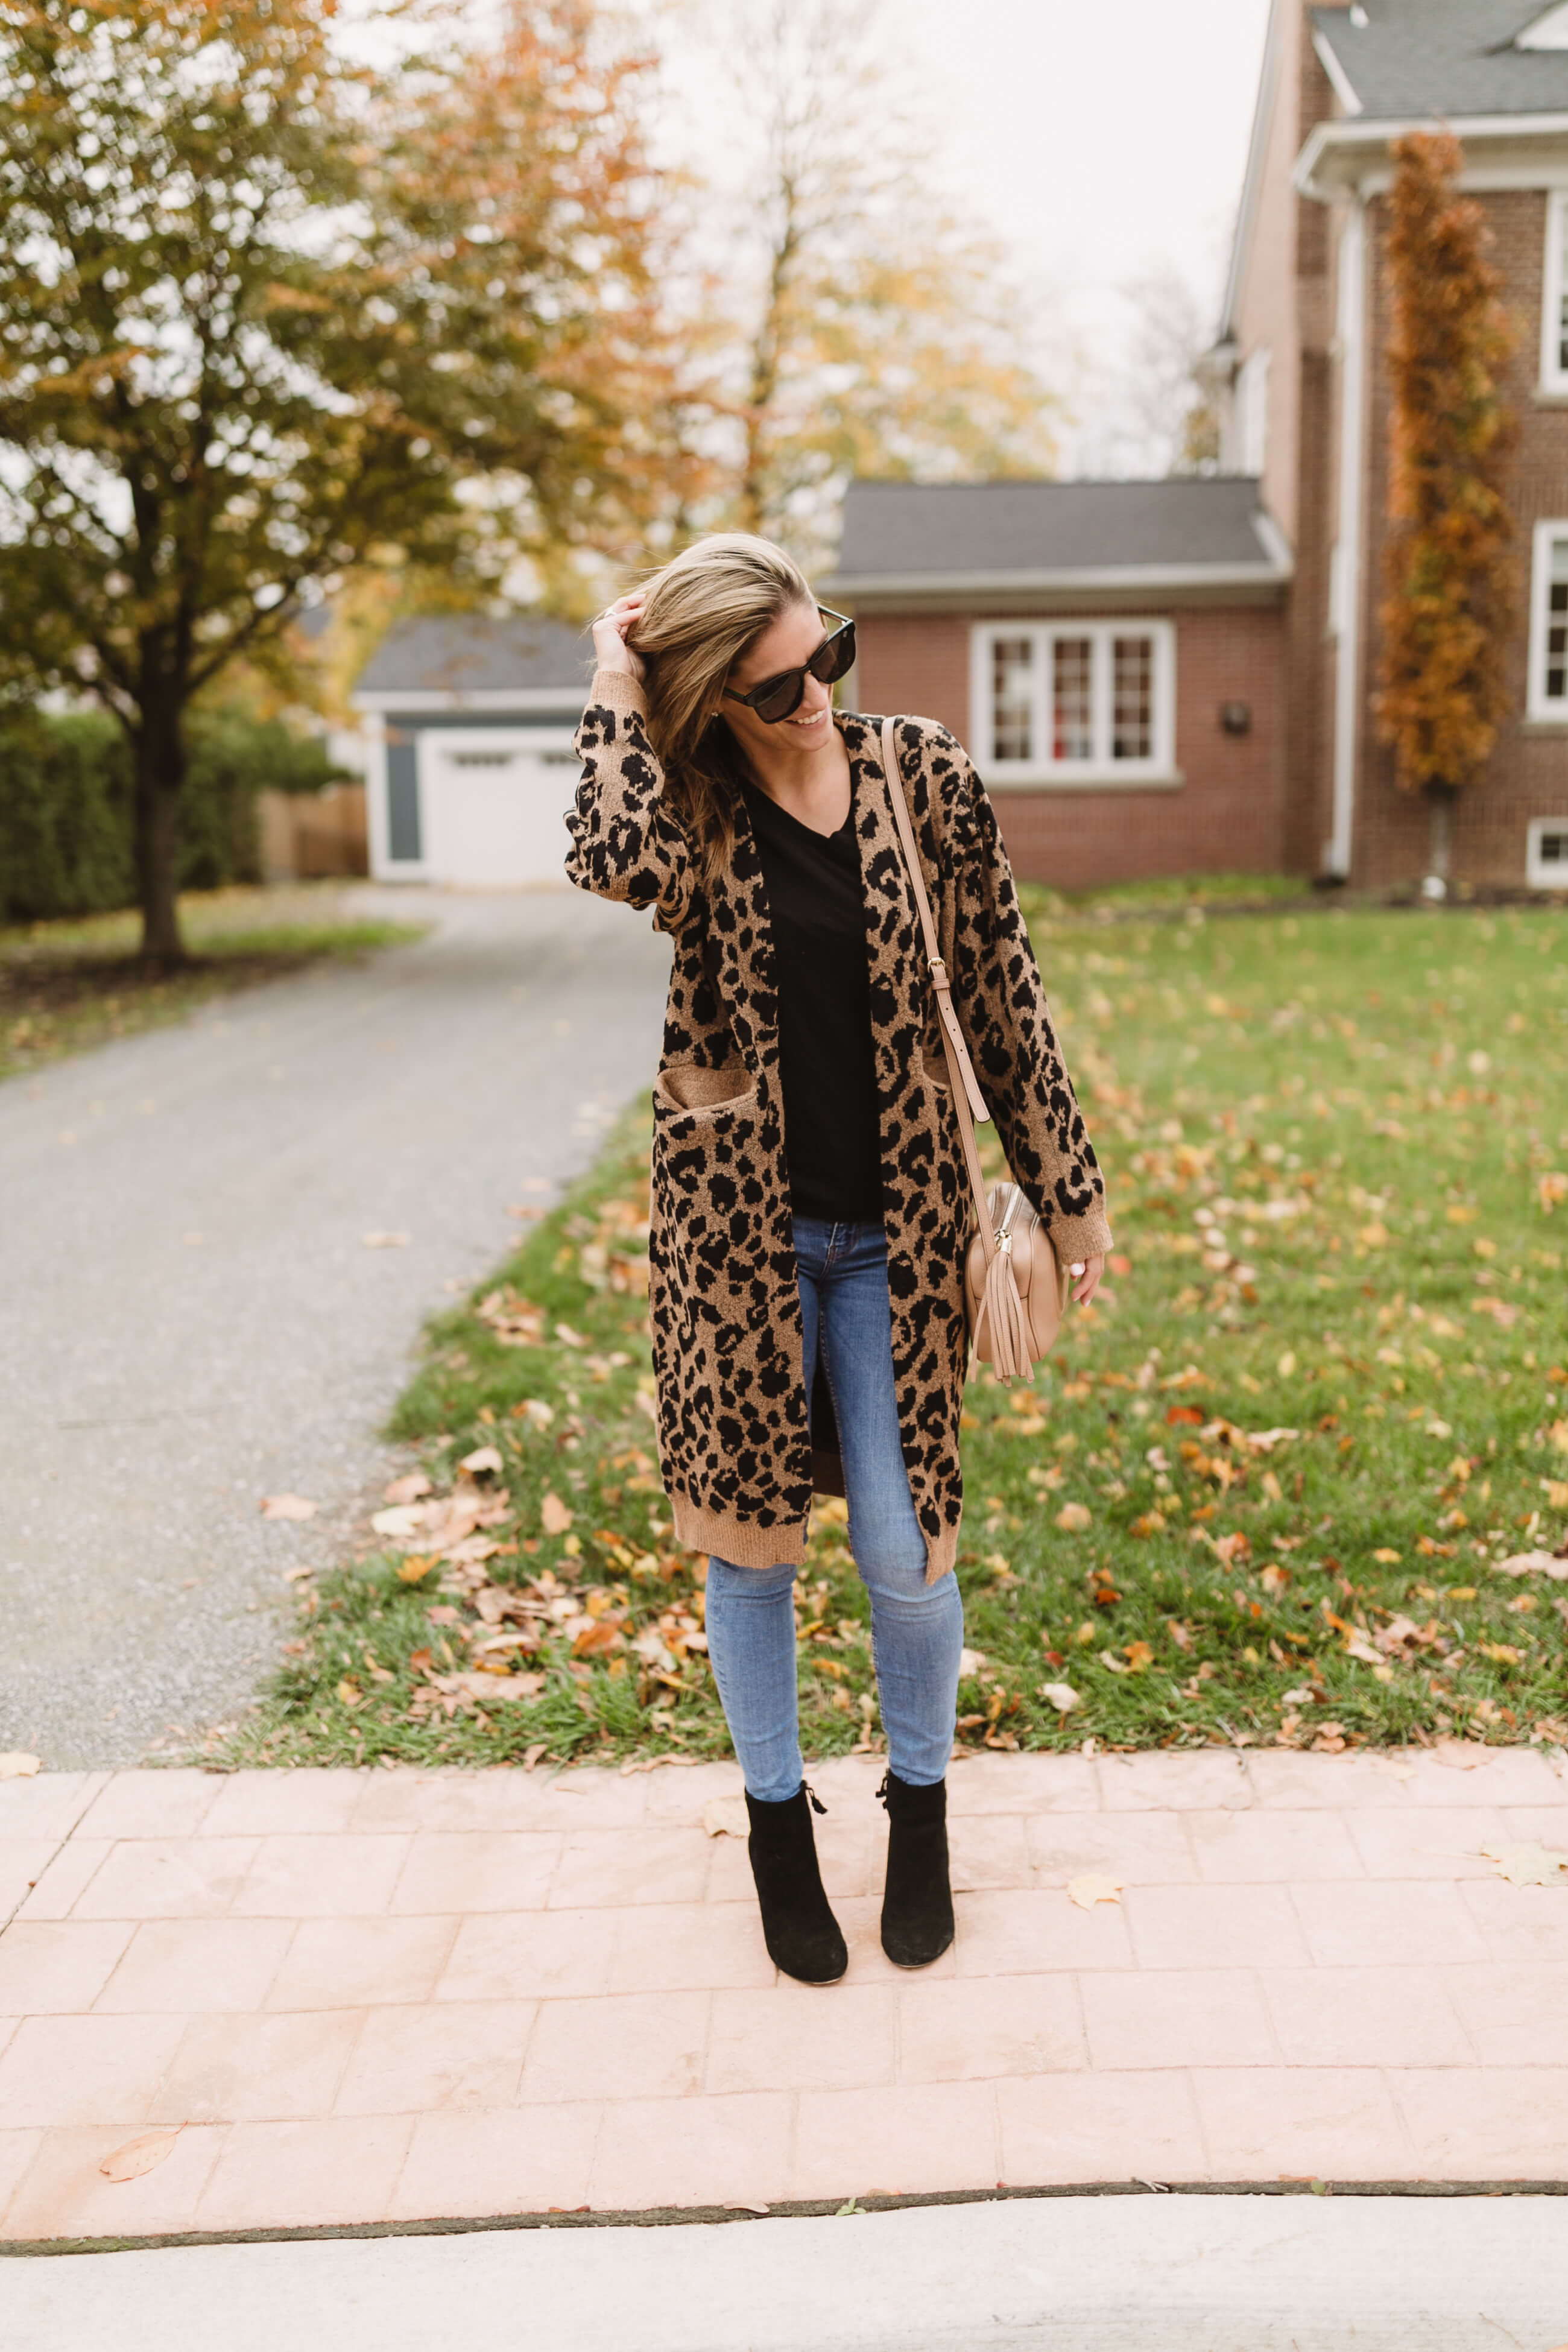 Leopard Chicwish sweater with pockets; winter style; winter longline cardigan Mandy FURNIS Whitby style blogger sparkleshinylove